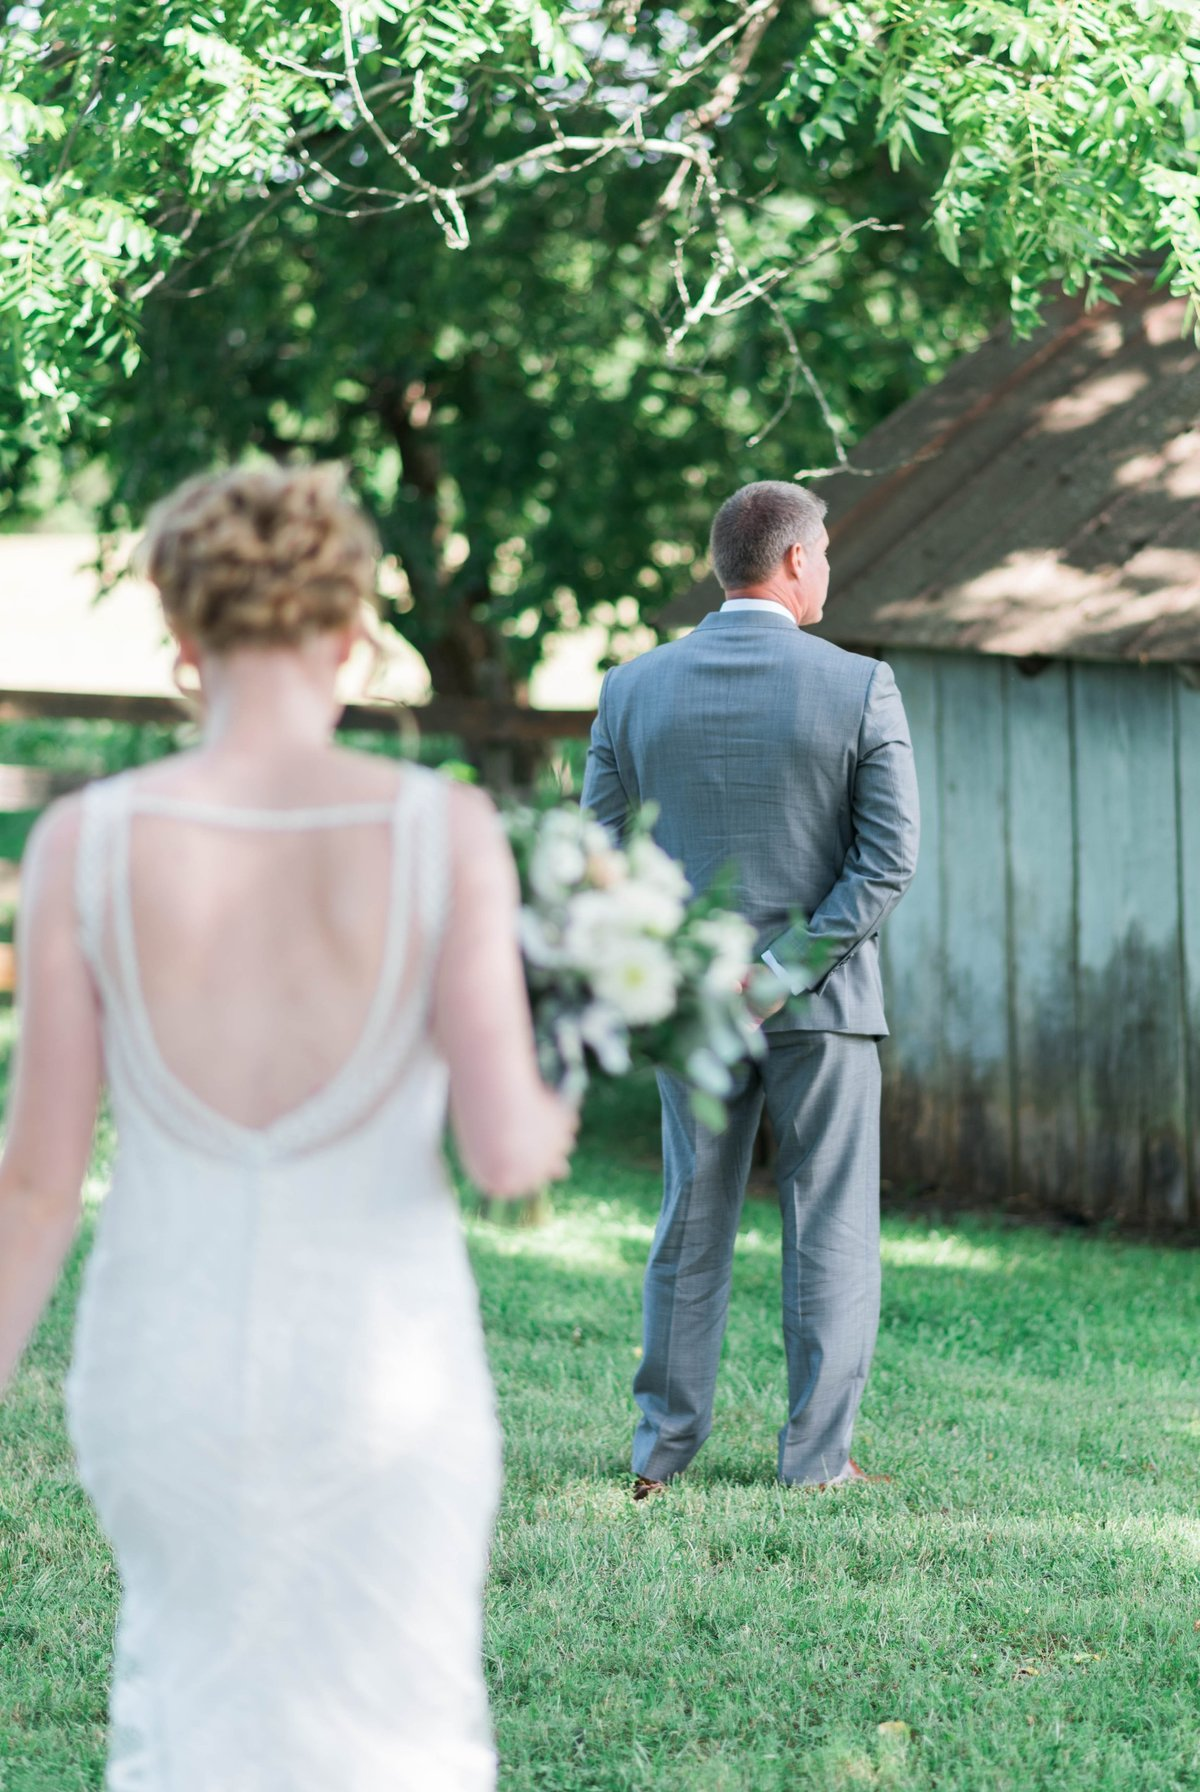 SorellaFarms_VirginiaWeddingPhotographer_BarnWedding_Lynchburgweddingphotographer_DanielleTyler+27(1)